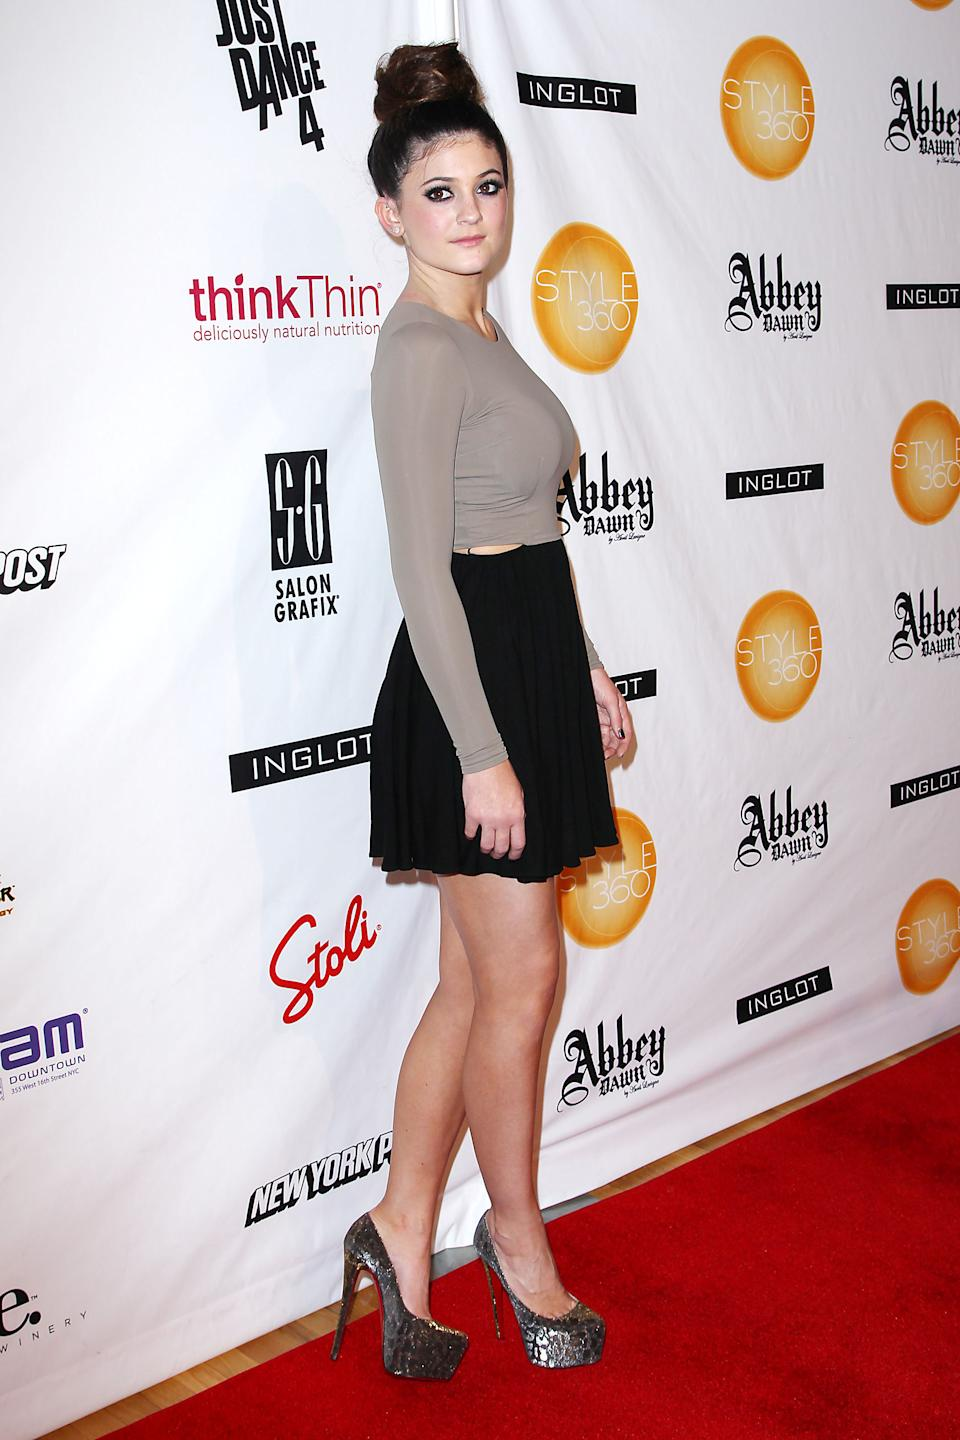 This image released by Starpix shows Kylie Jenner at the showing of the Abbey Dawn by Avril Lavigne Spring 2013 collection, Monday, Sept. 10, 2012, during Fashion Week in New York. (AP Photo/Starpix, Kristina Bumphrey)